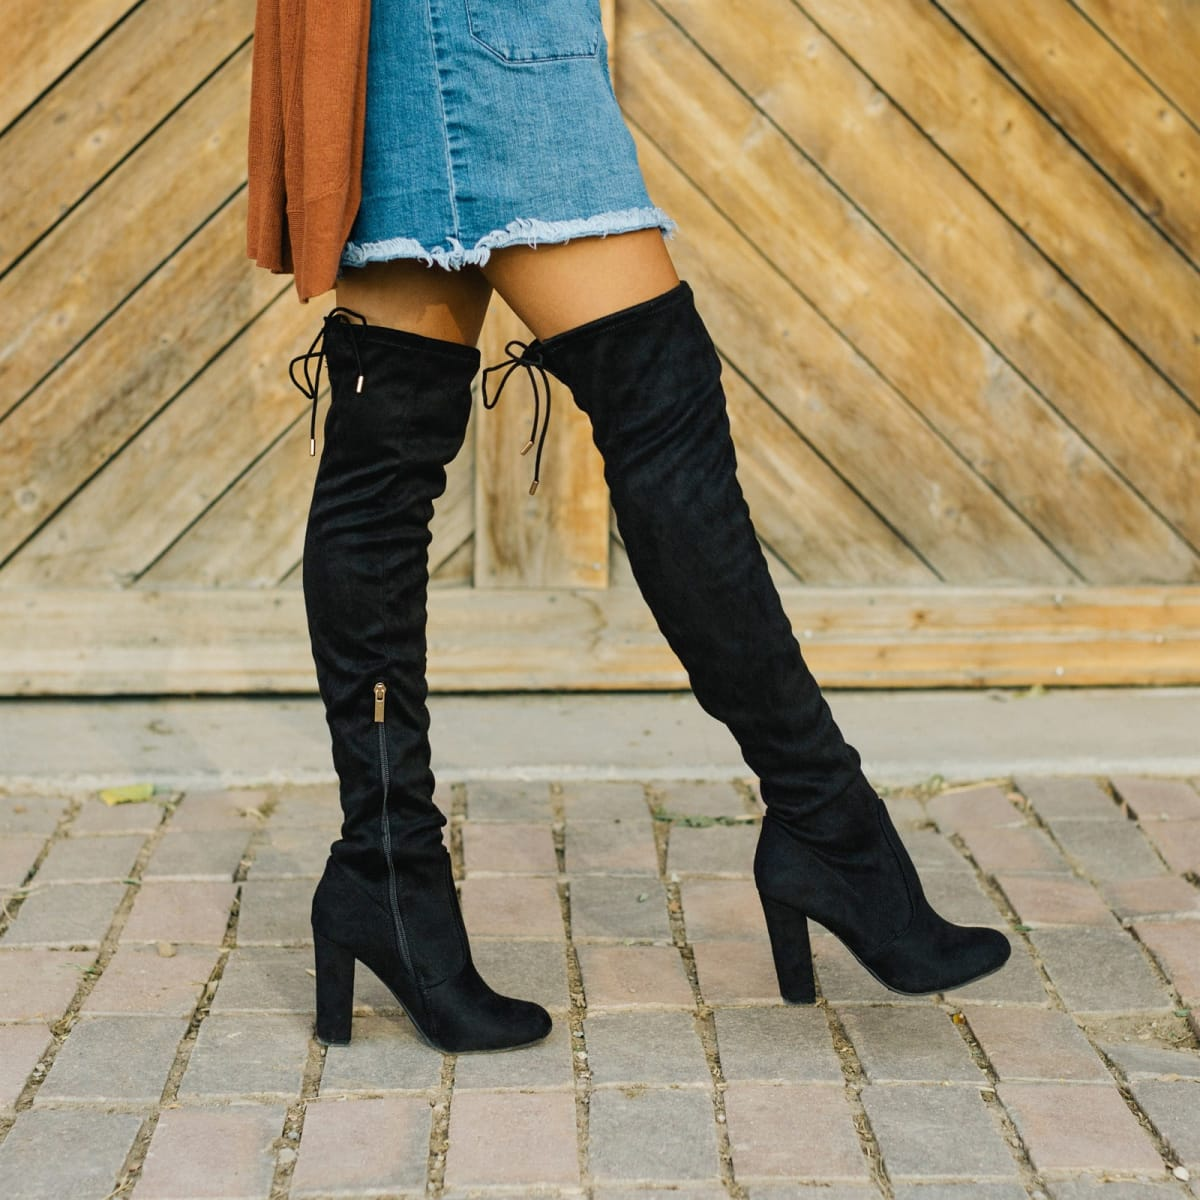 Slimming Over the Knee Boots | Wide Calf Options